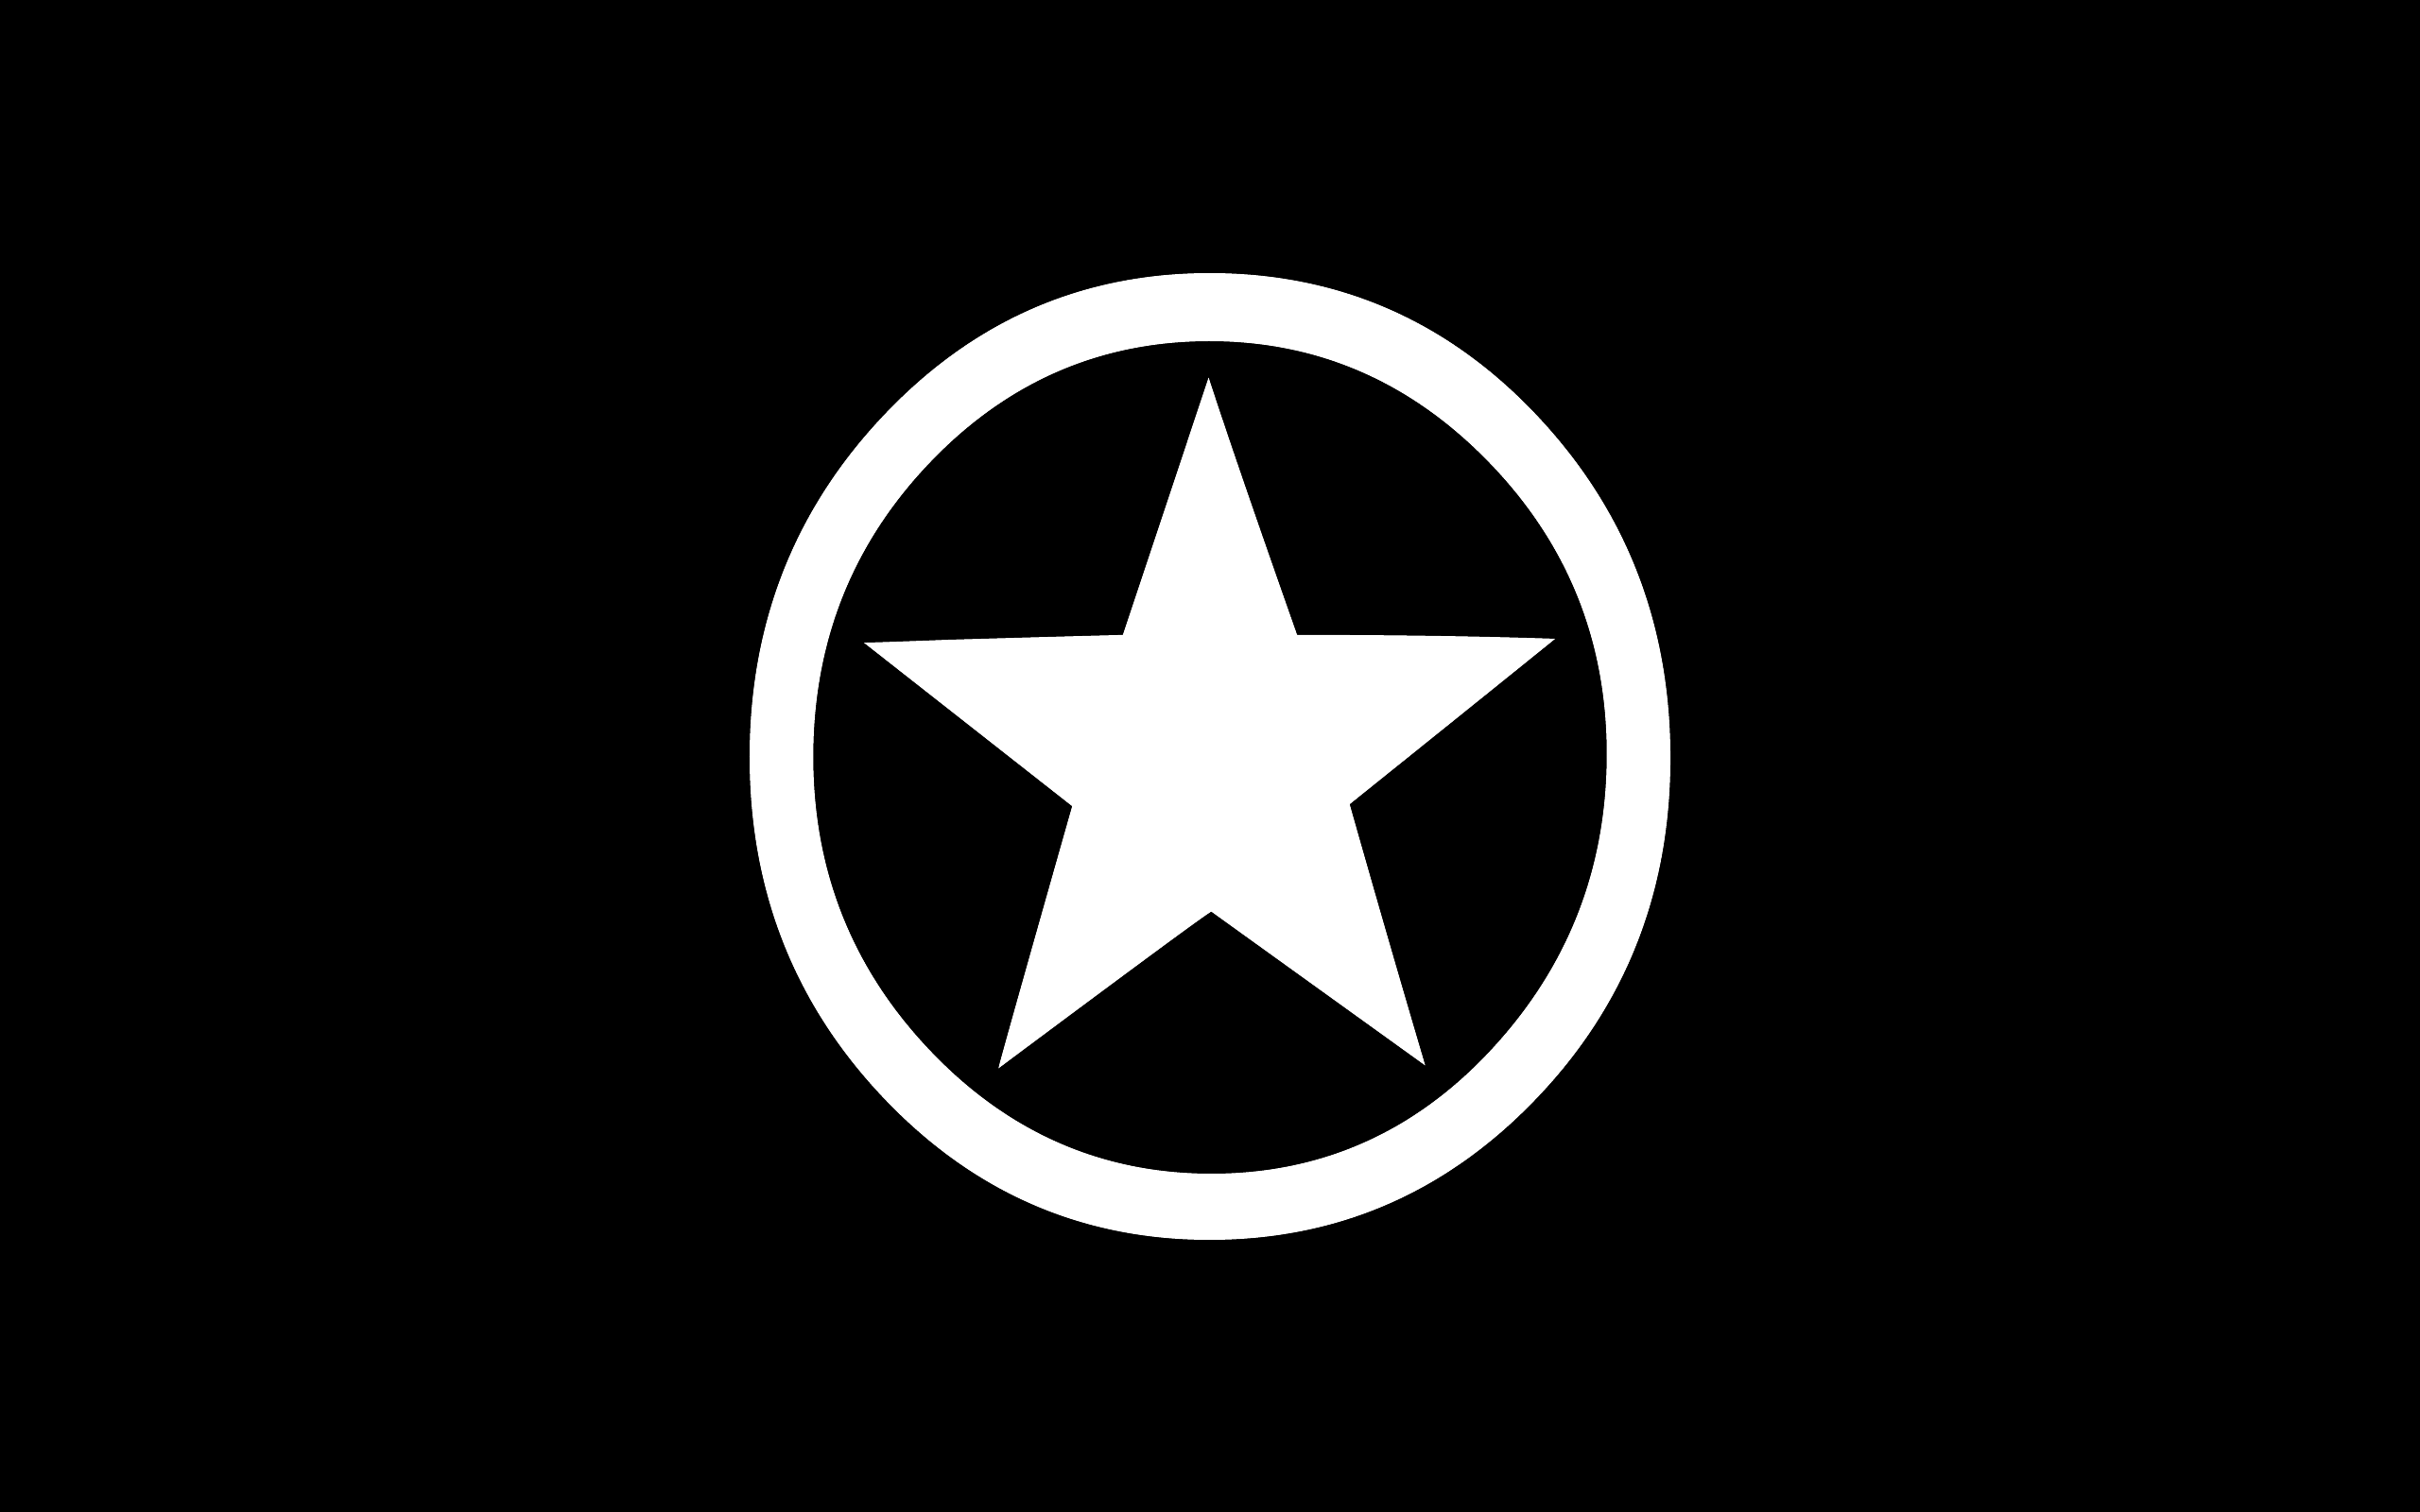 Converse Images All Star HD Wallpaper And Background Photos